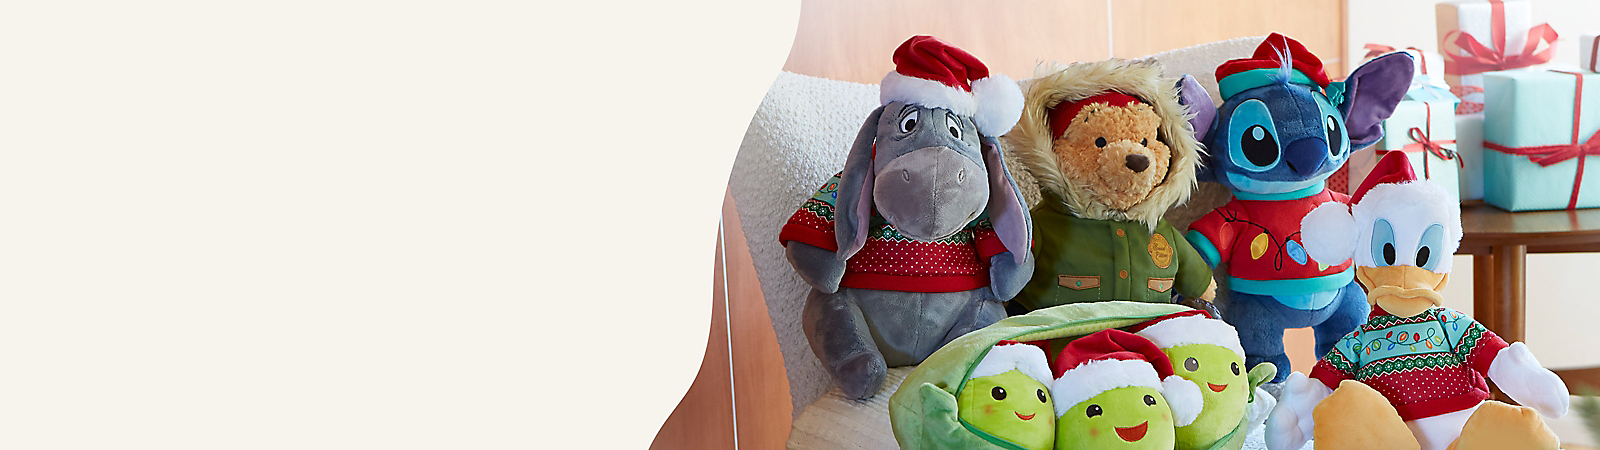 Background image of Holiday Toys & Stuffed Animals